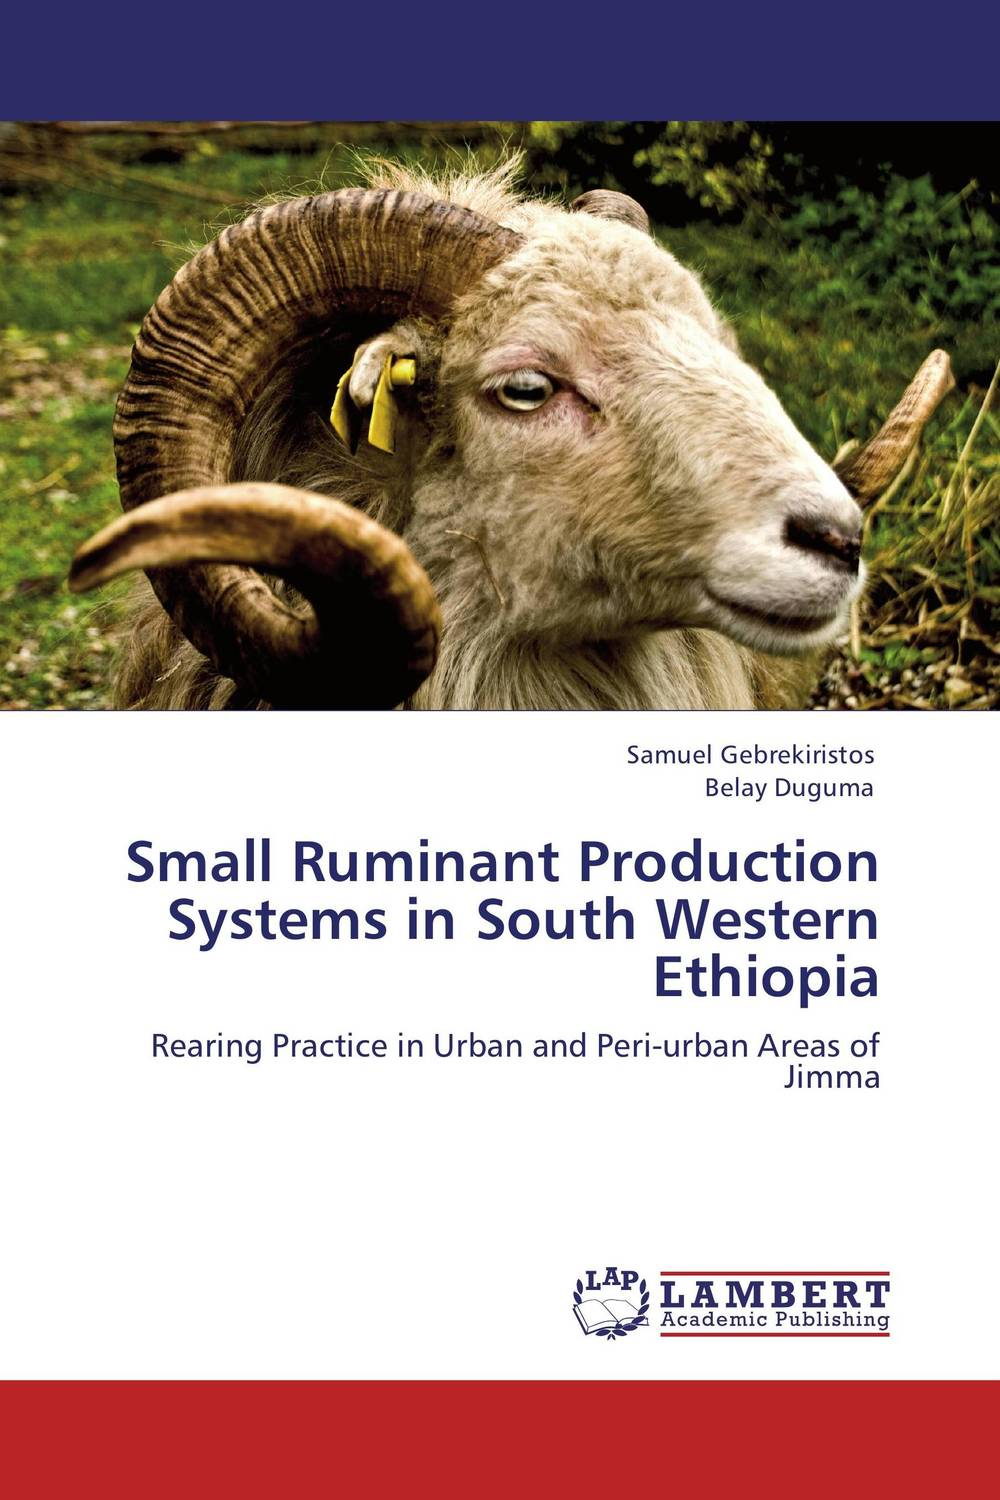 Фото Small Ruminant Production Systems in South Western Ethiopia cervical cancer in amhara region in ethiopia